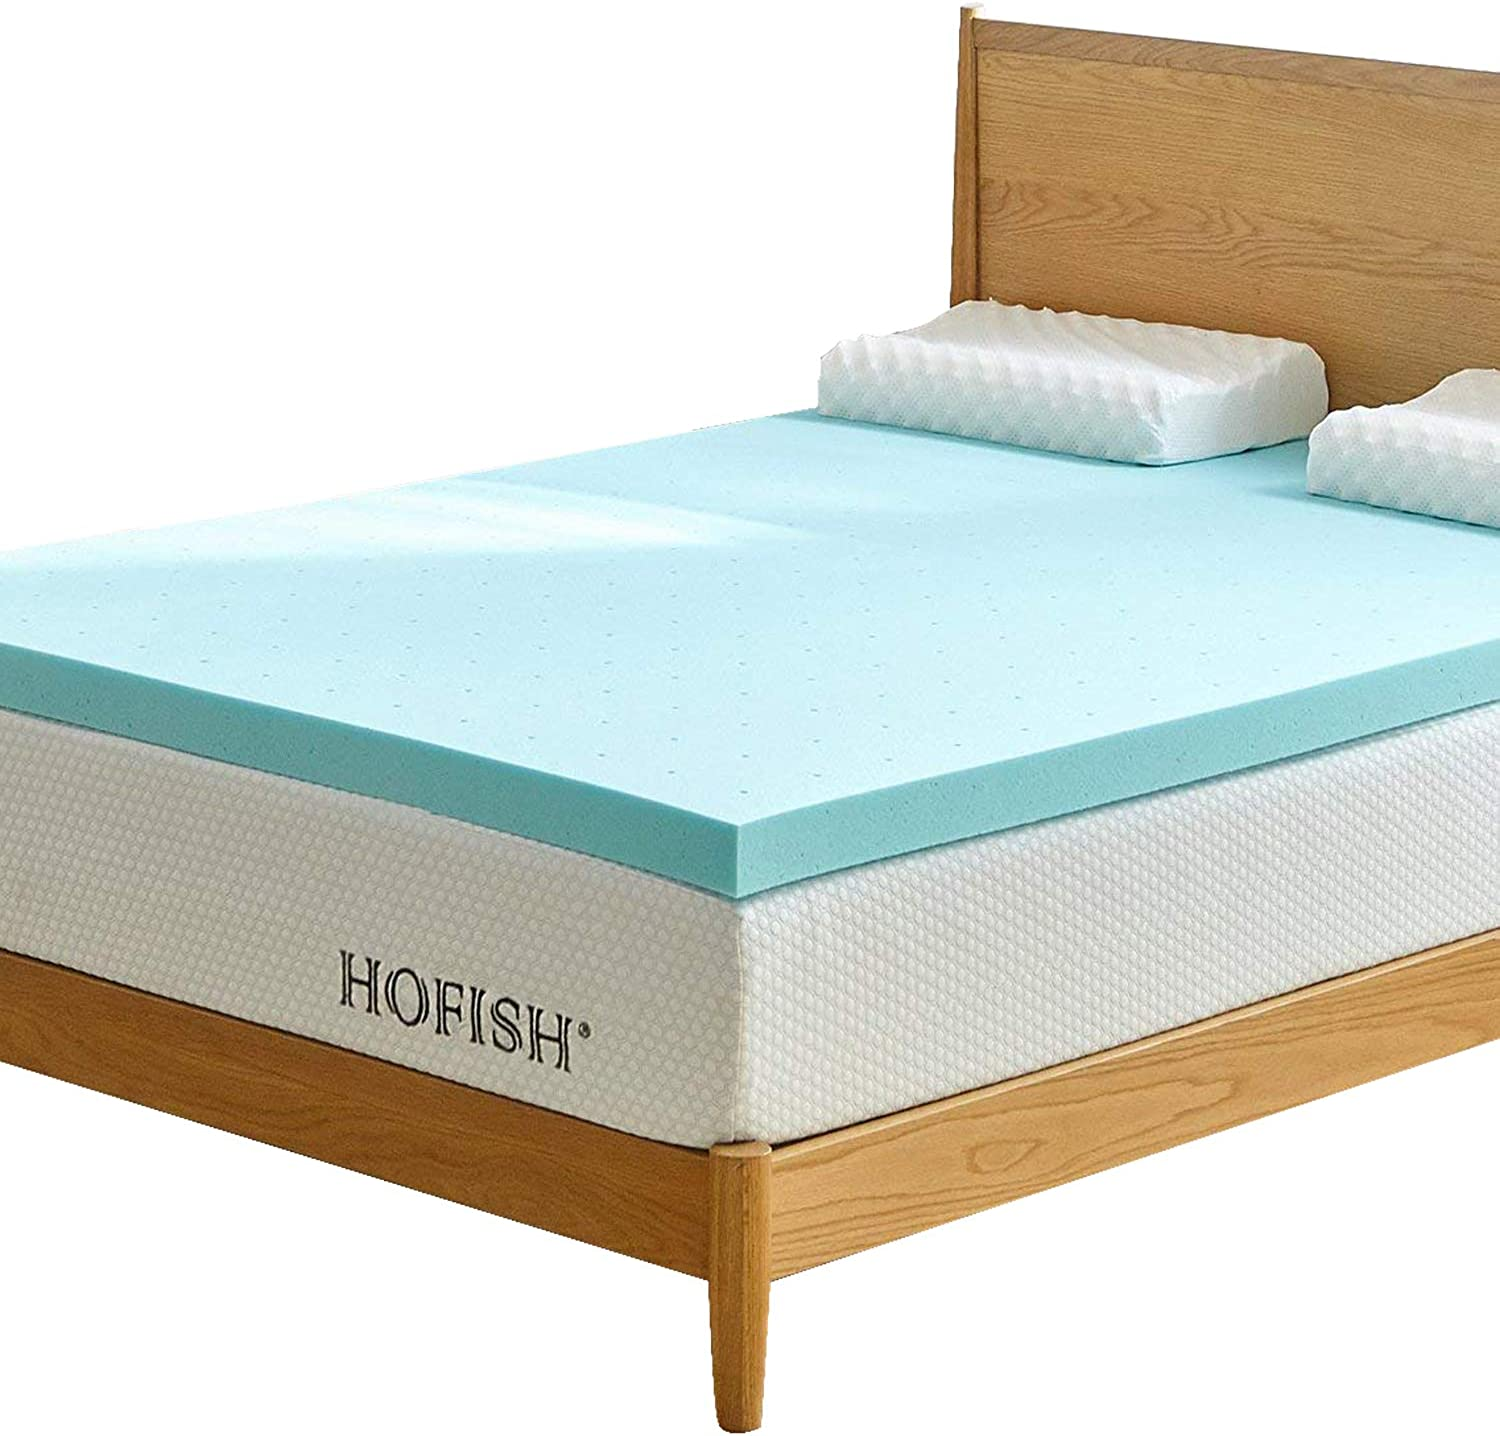 HOFISH 3 inch Gel Memory Foam Mattress Topper Twin